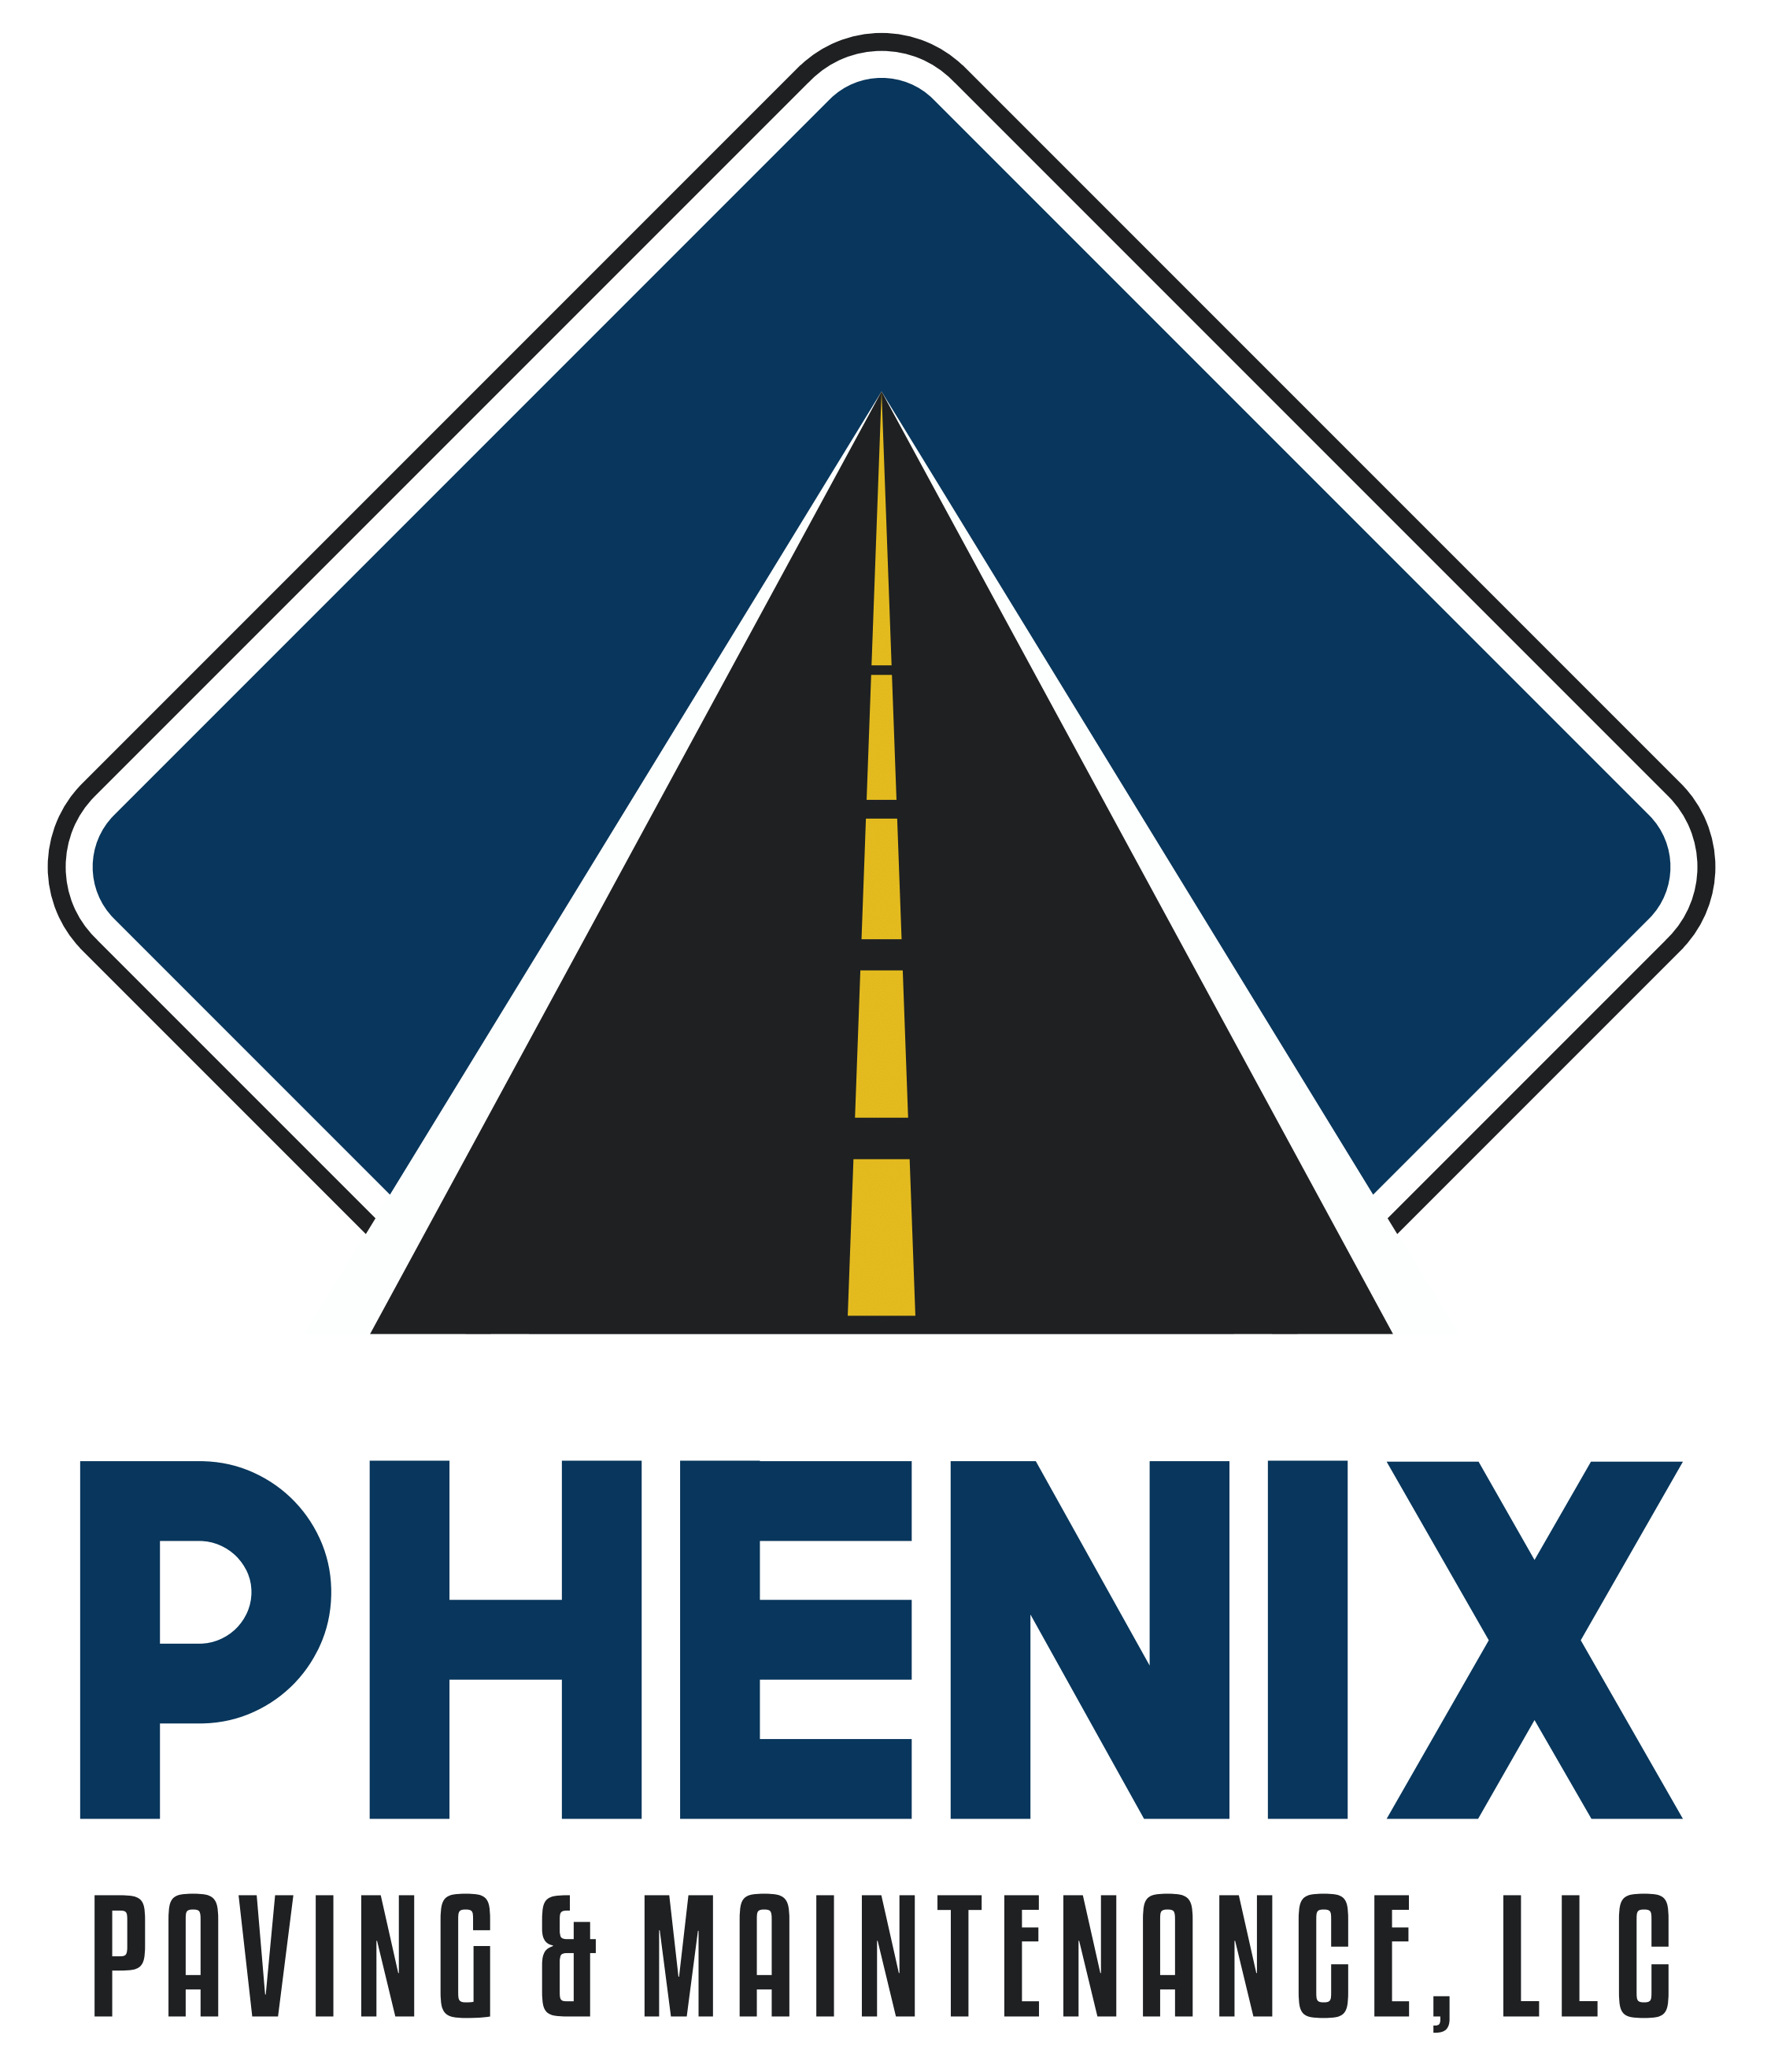 Phenix Paving